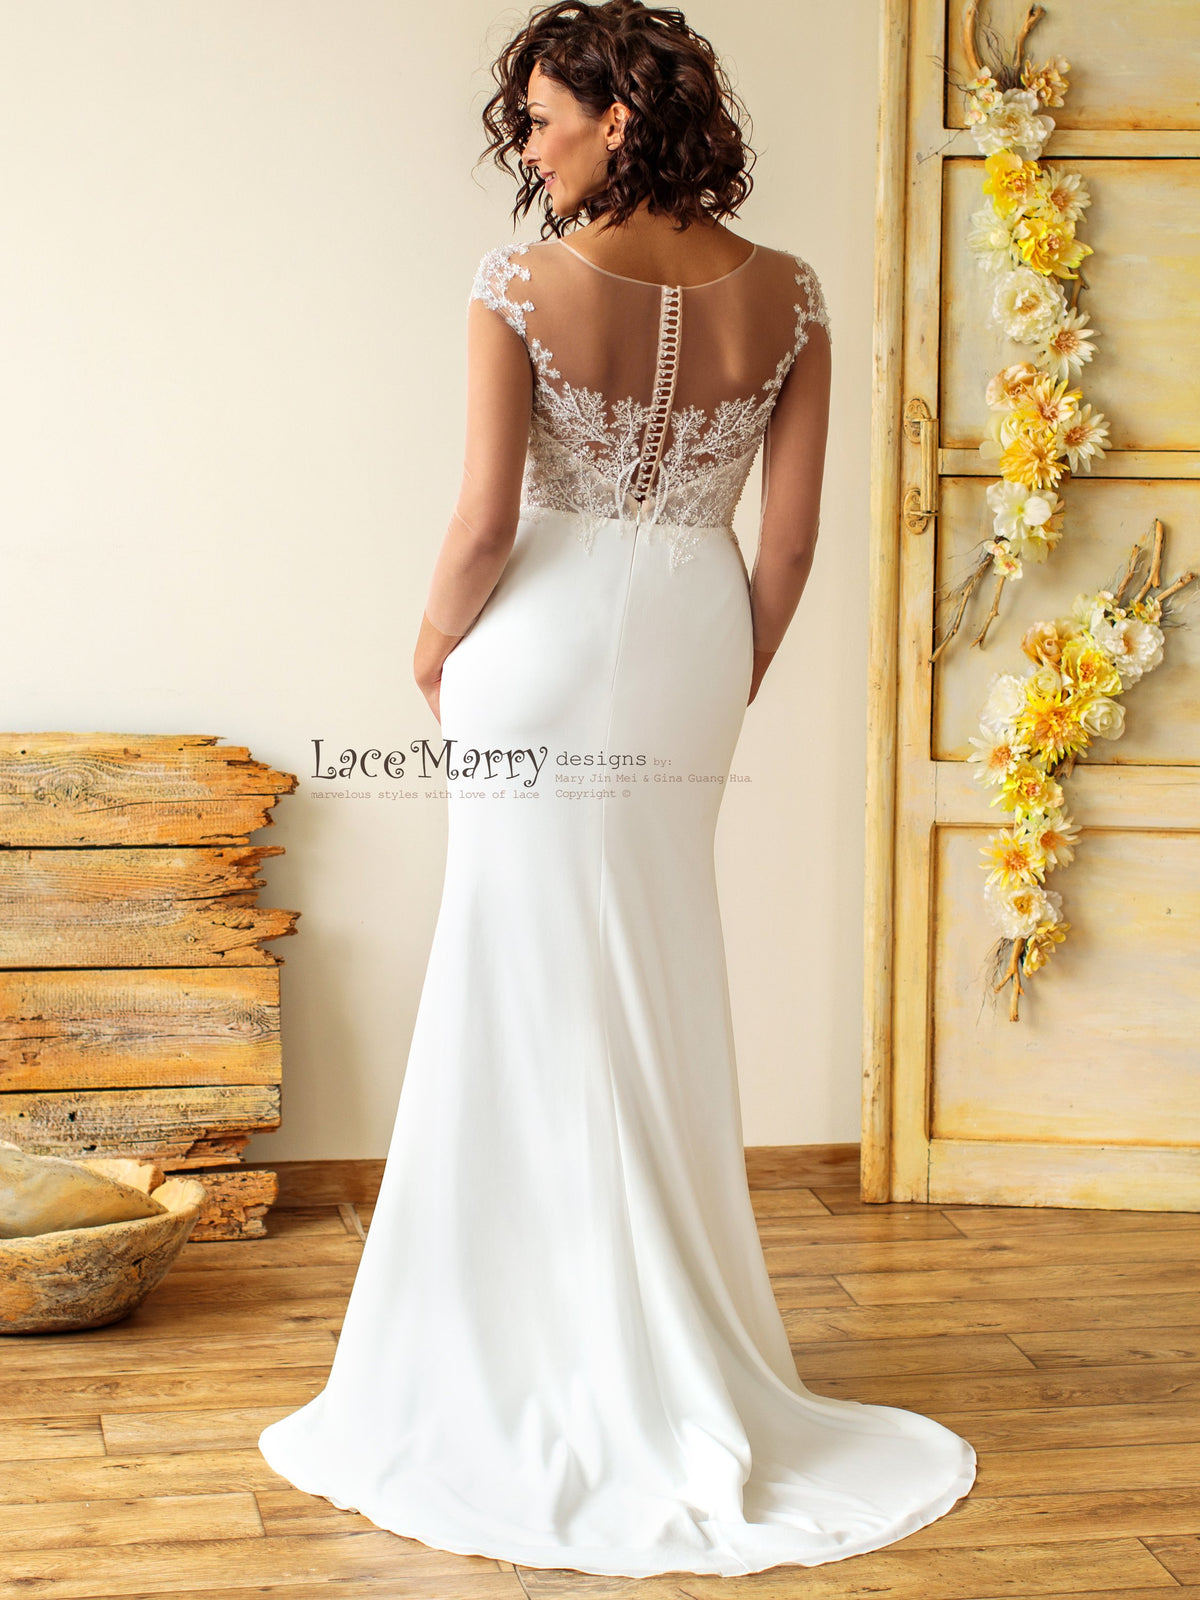 Beautiful Illusion Back Wedding Dress